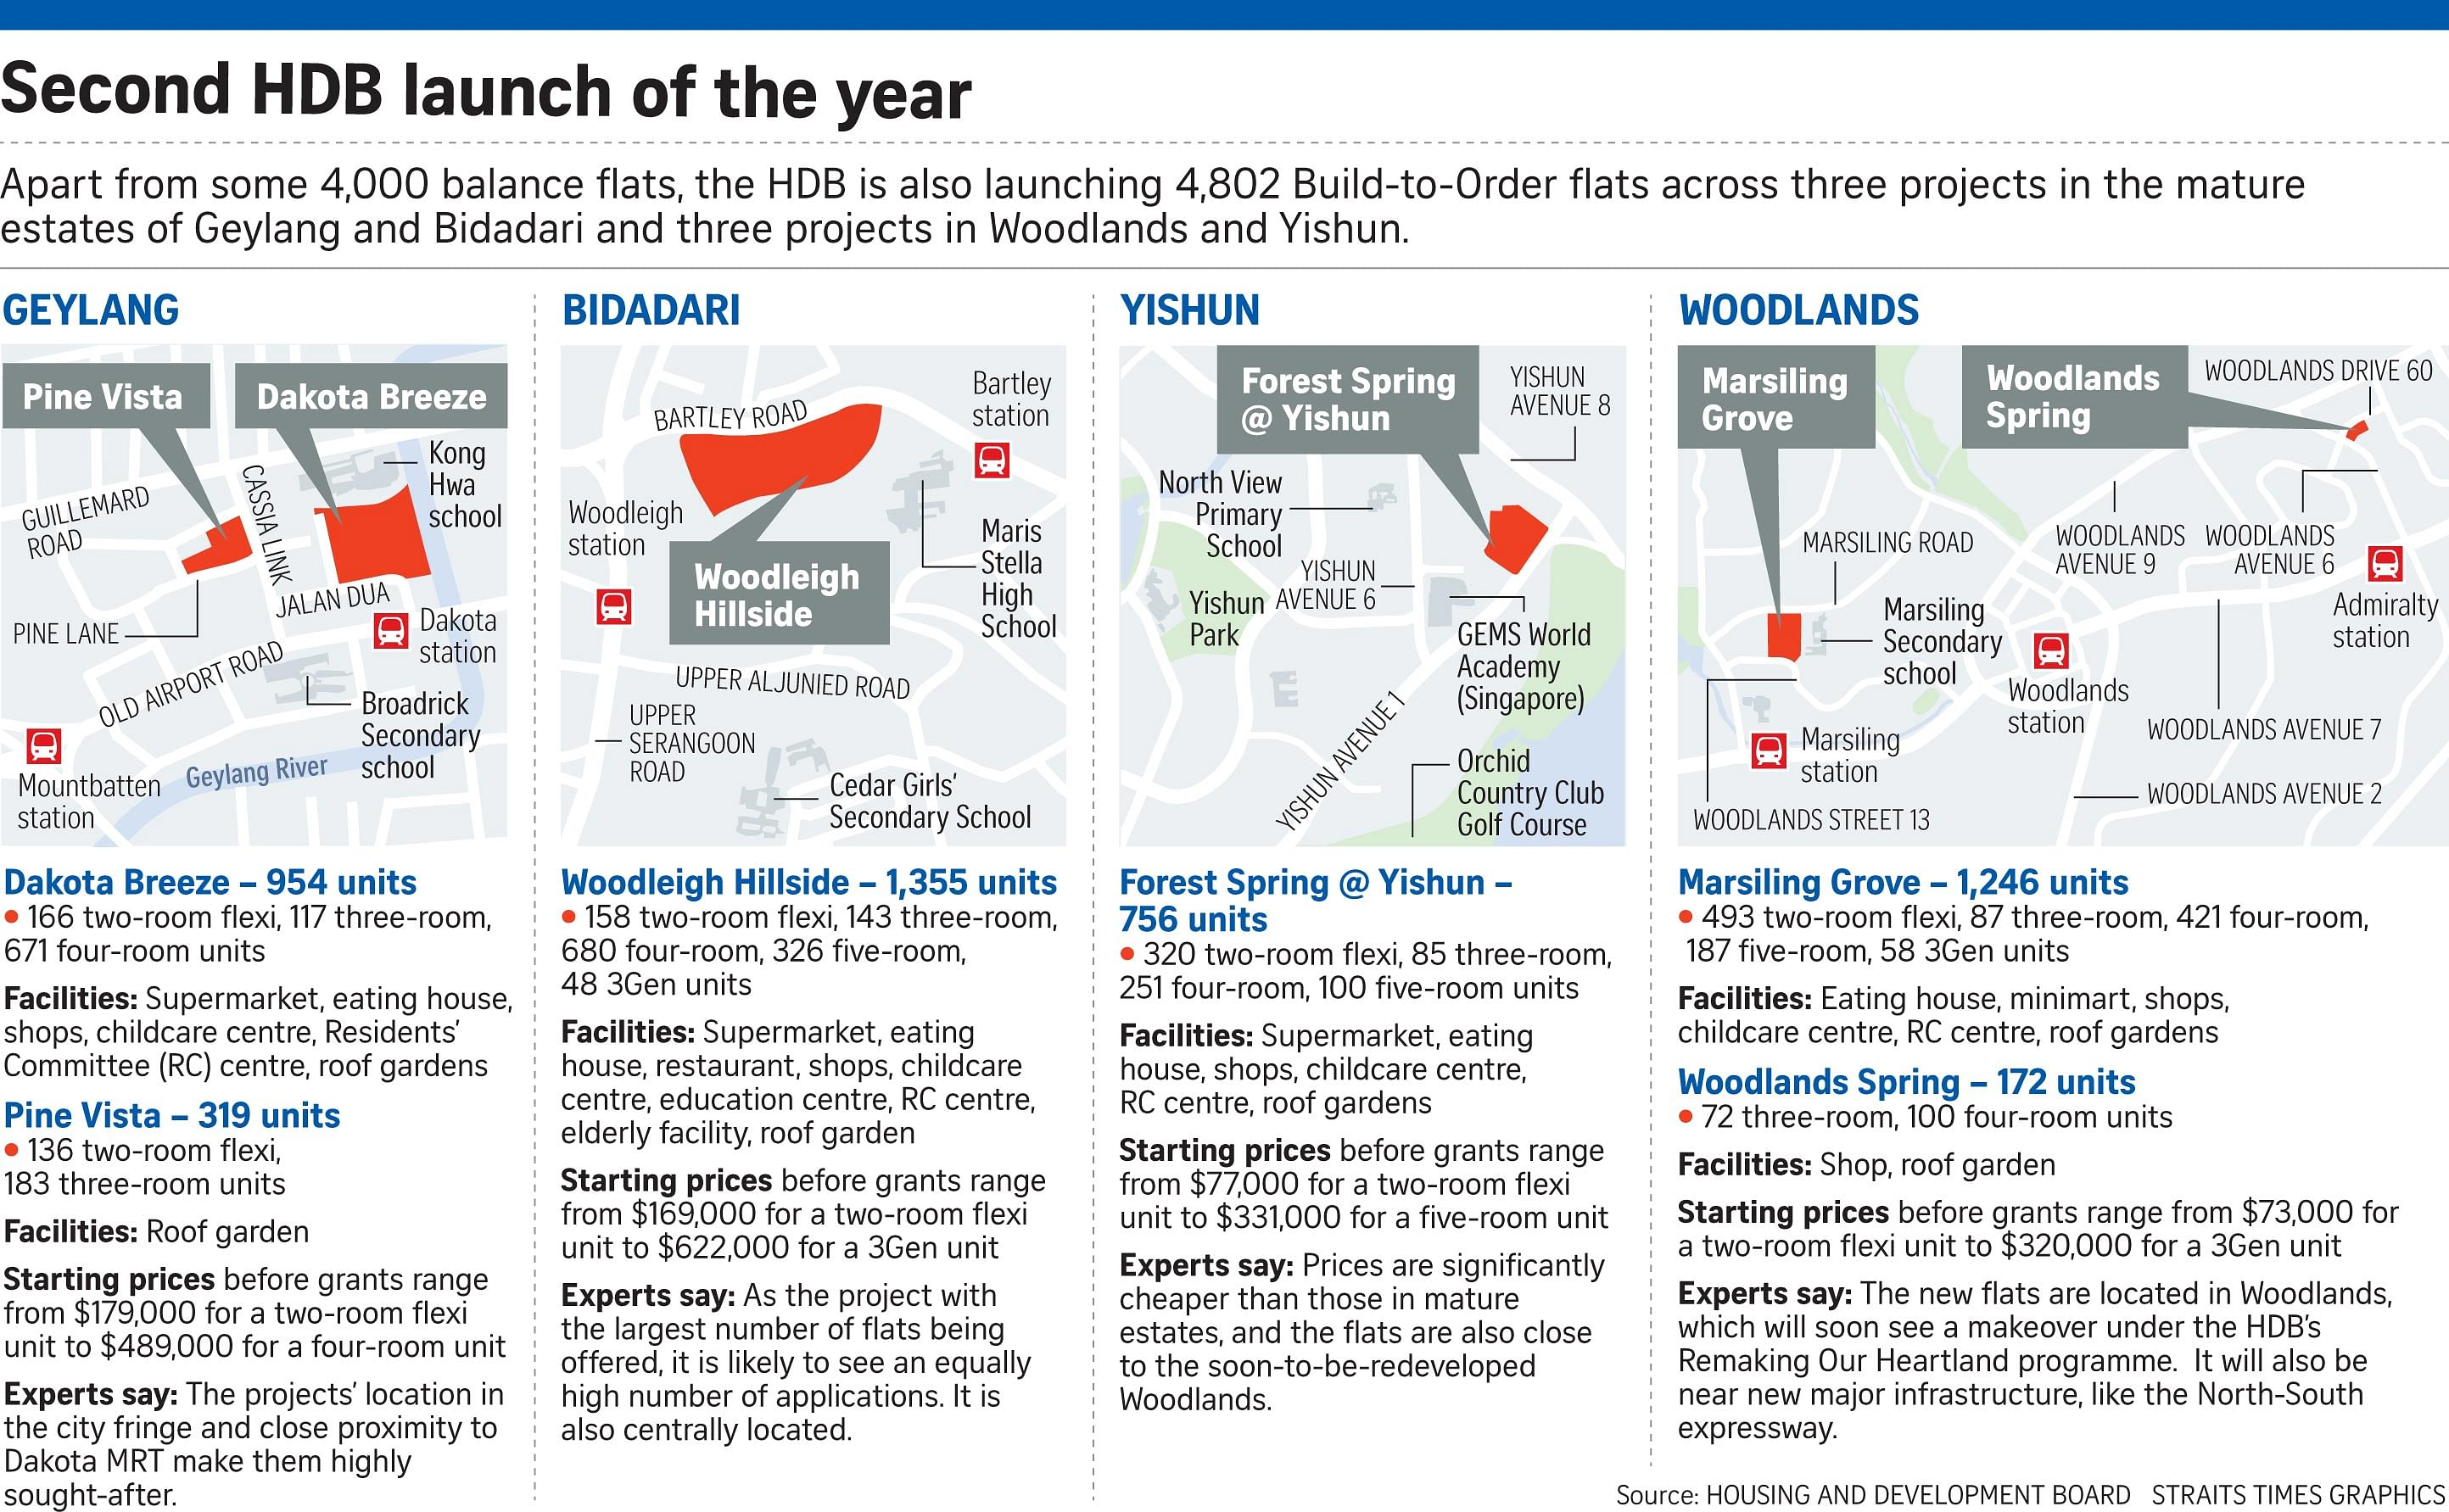 Hdb sales of balance - The bulk of the queenstown flats comes from the skyparc dawson project built as one of the replacement projects for residents of 31 blocks in tanglin